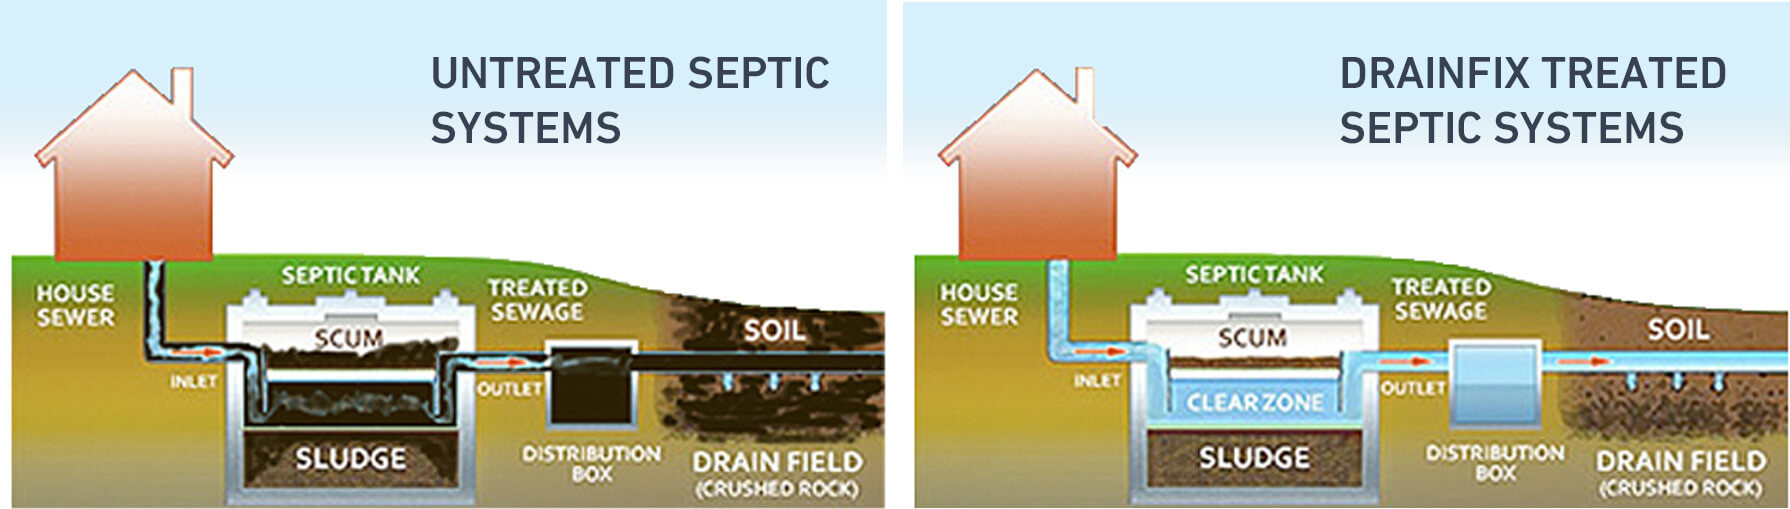 Drainfix Treated Septic Systems